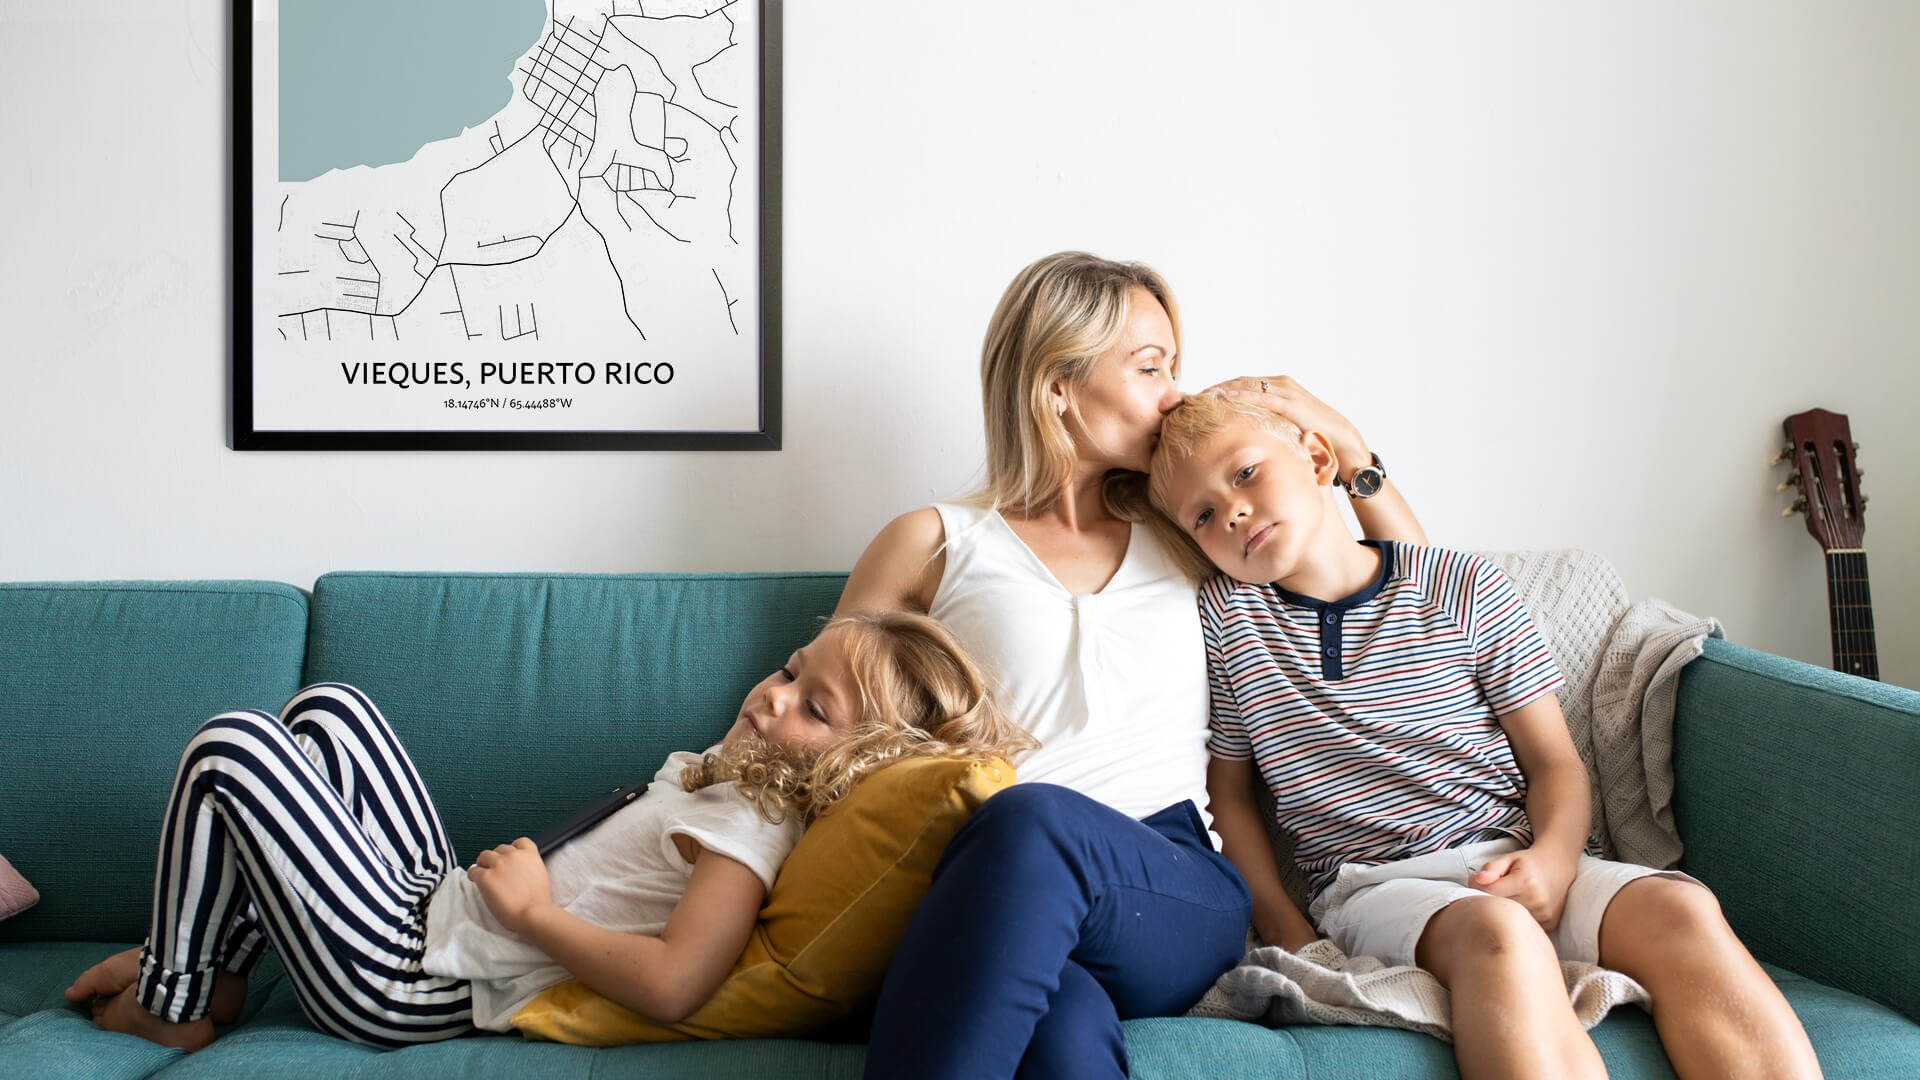 Vieques map poster